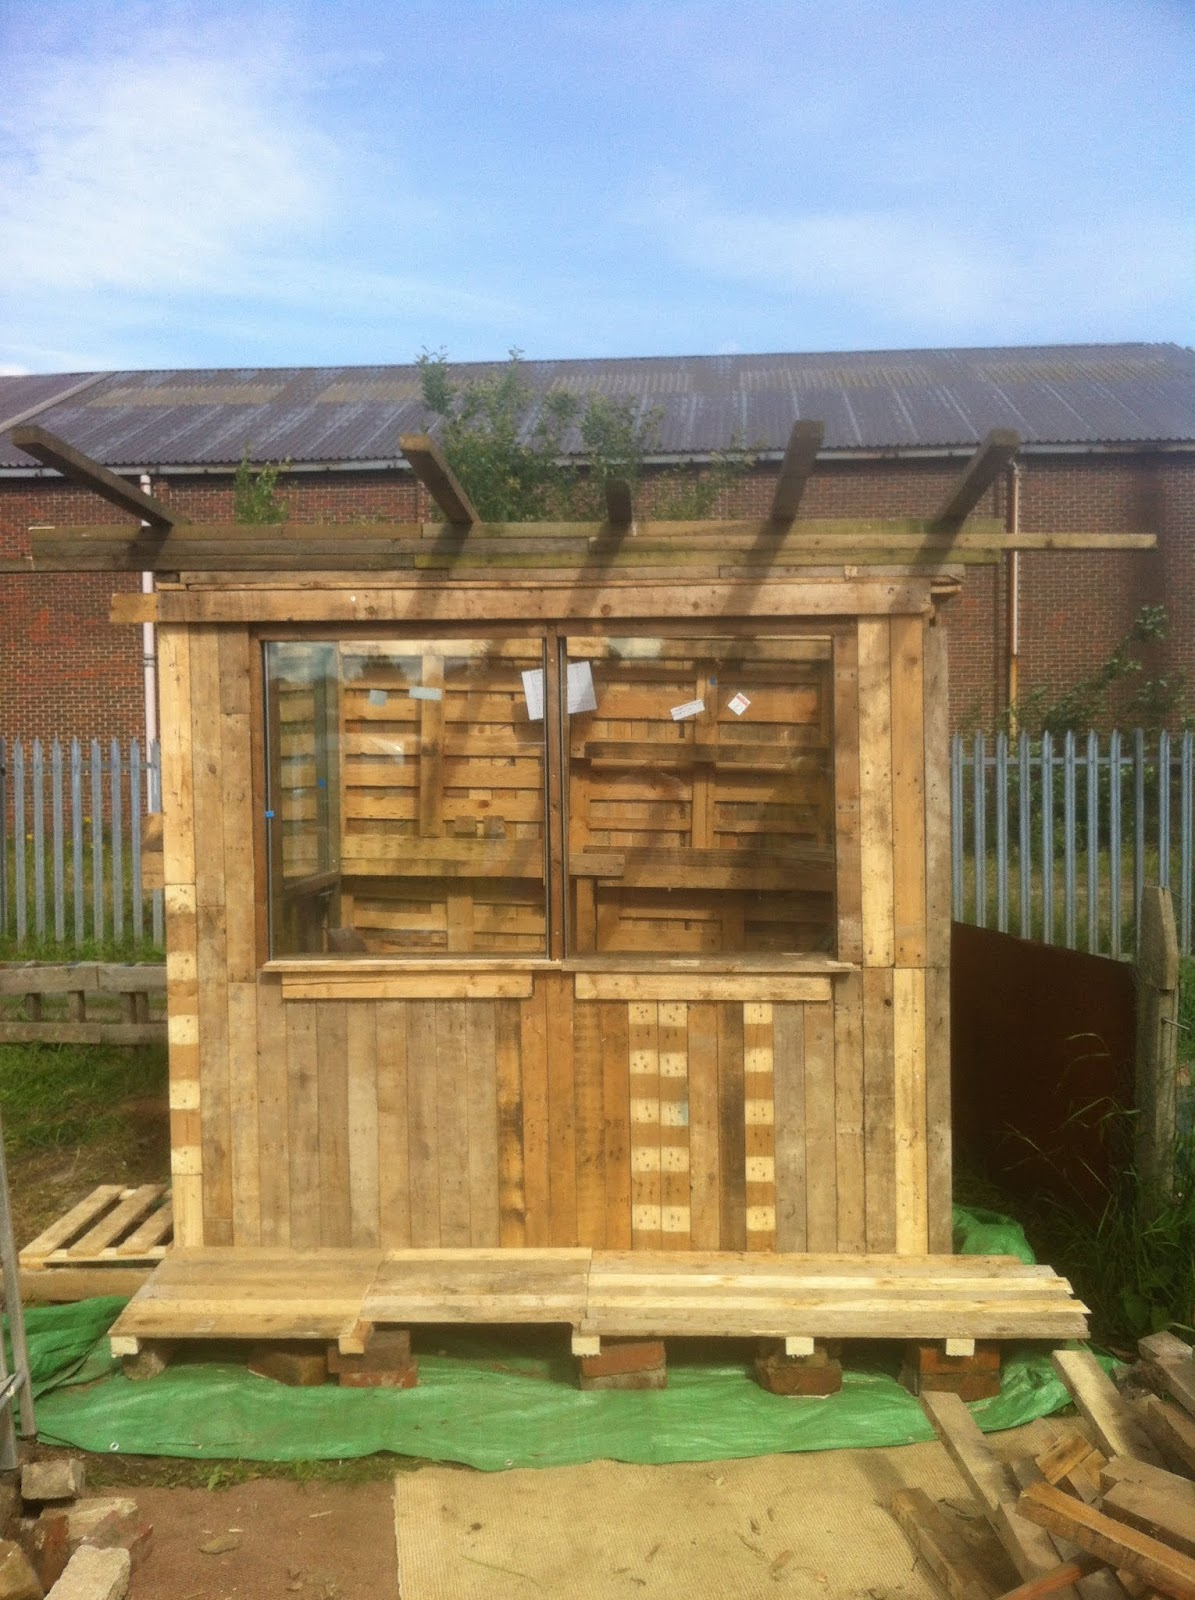 My Yorkshire Allotment: The Pallet shed build